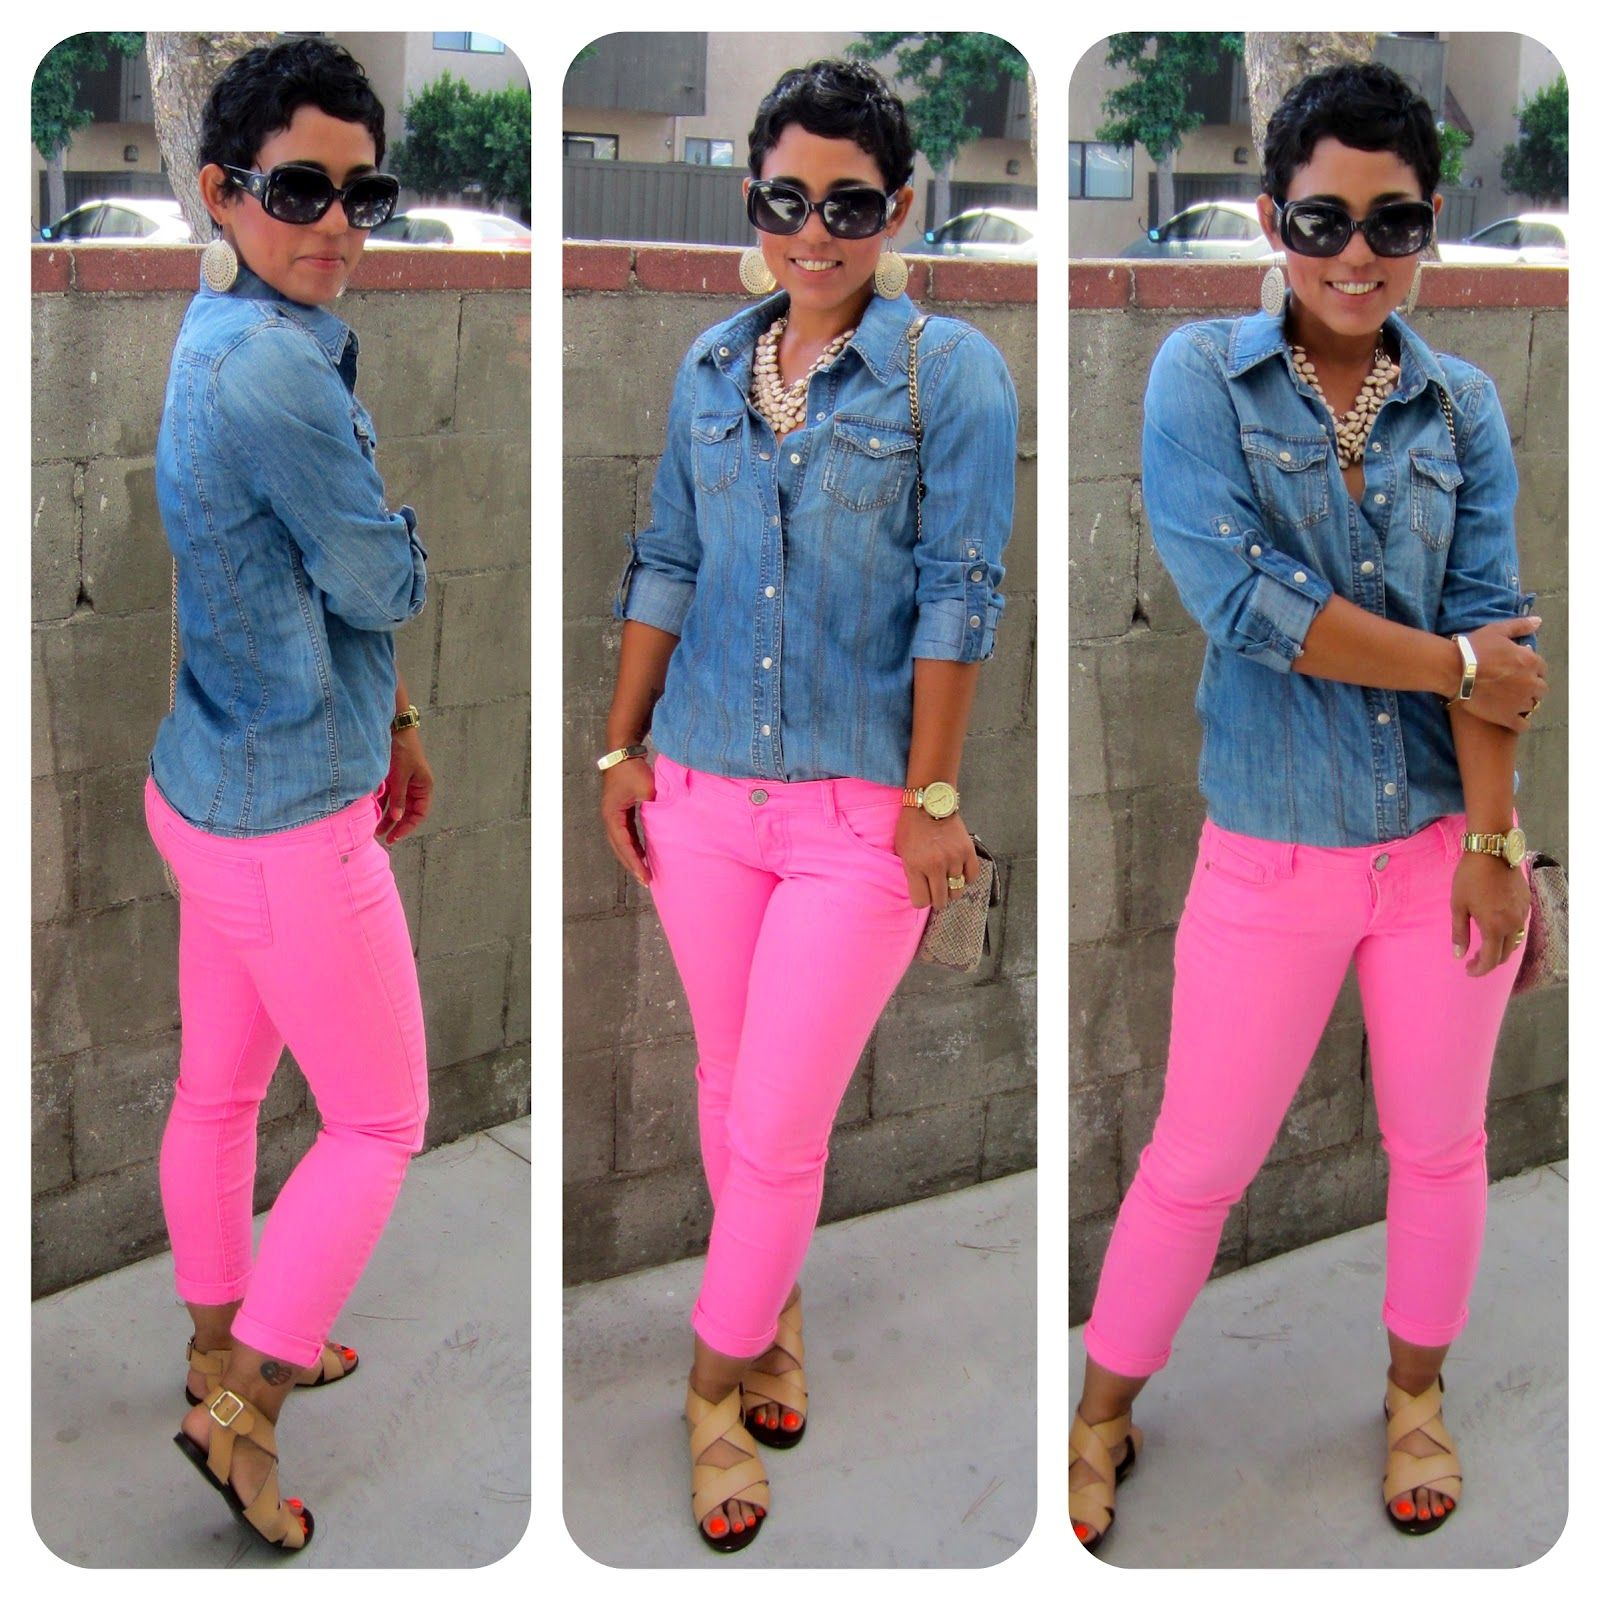 Saturdays Look Neon Jeans + Denim Shirt Details at www.mimigstyle.com | Denim Outfits ...